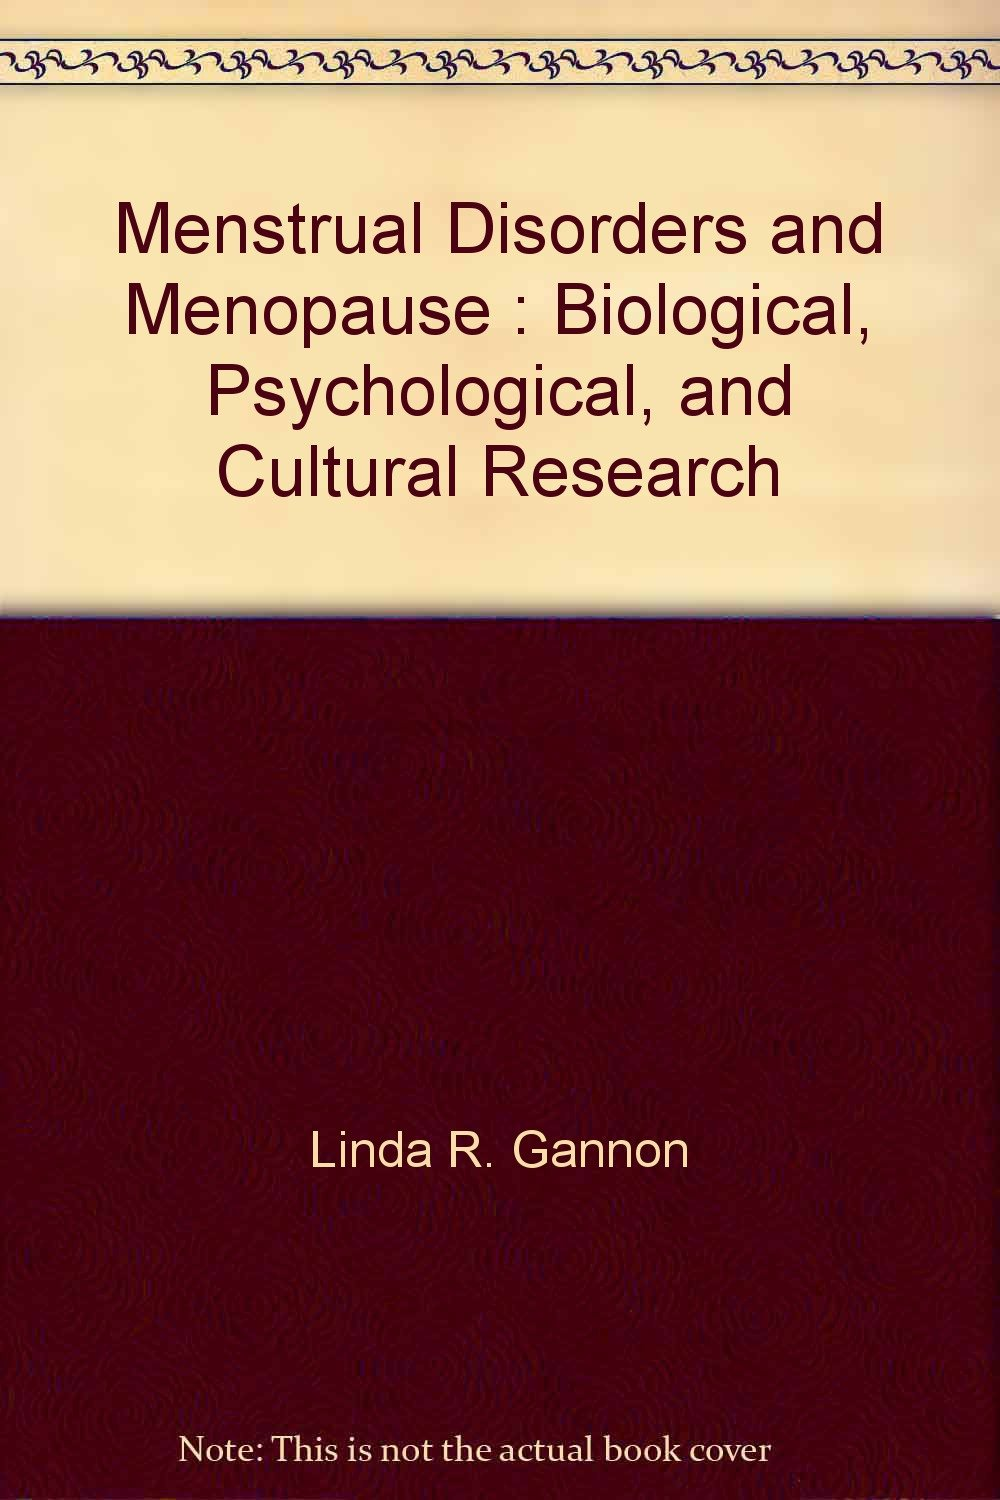 Menstrual Disorders and Menopause : Biological, Psychological, and Cultural Research